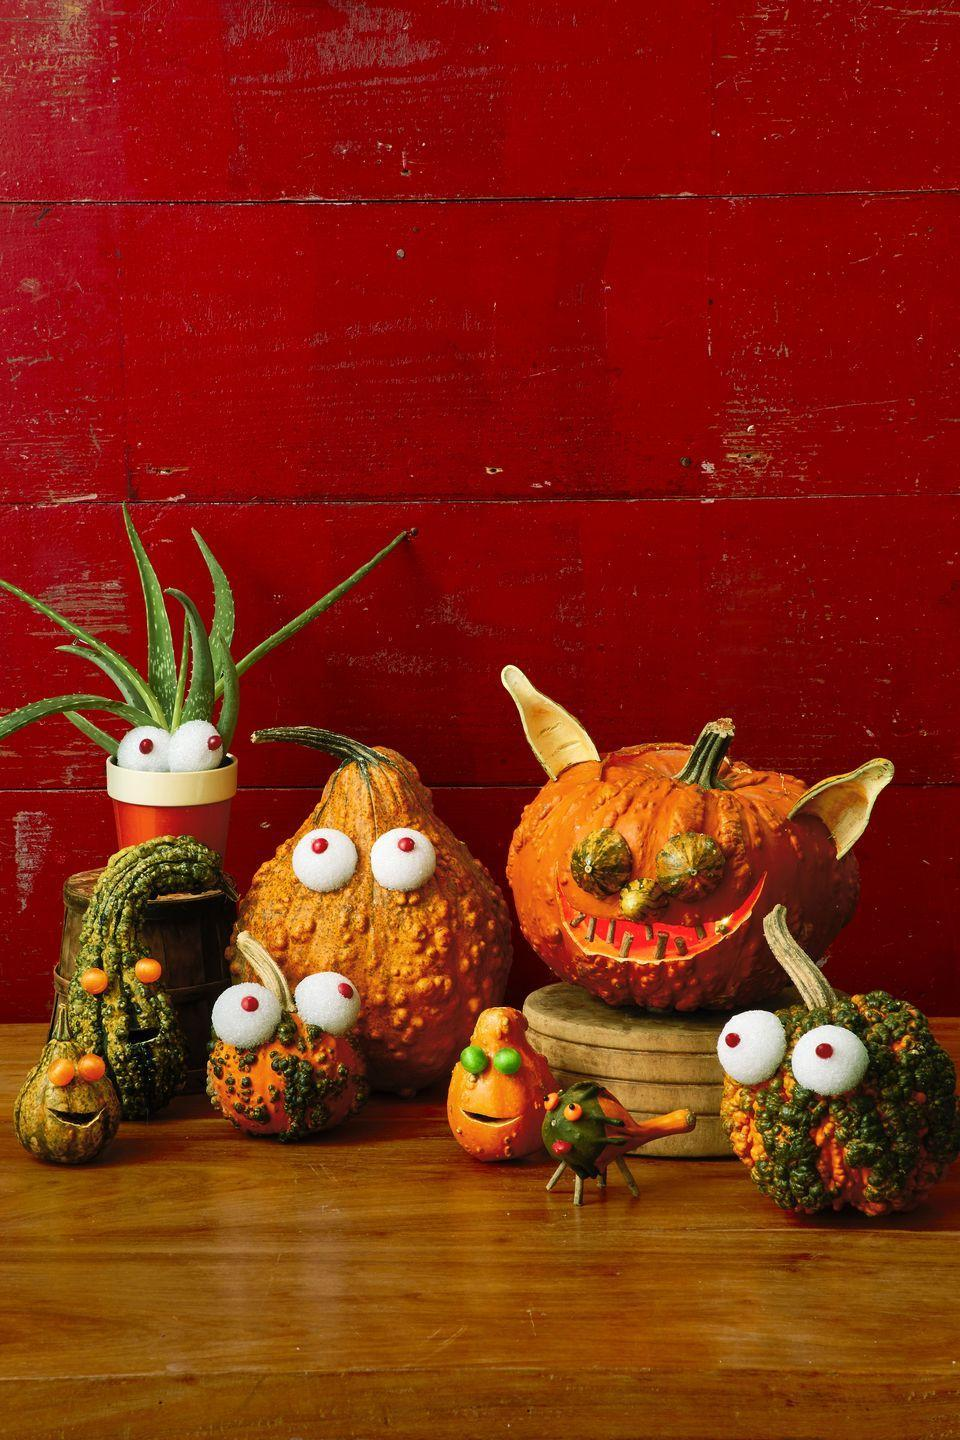 <p>For this motley crew, bumpy, odd-shaped gourds take center stage. To make eyeballs, cut small Styrofoam balls in half, then hot-glue hard candy in the center; attach with pins or hot glue. Hollow out gourds for ears. Use twigs for teeth and legs.<br></p>